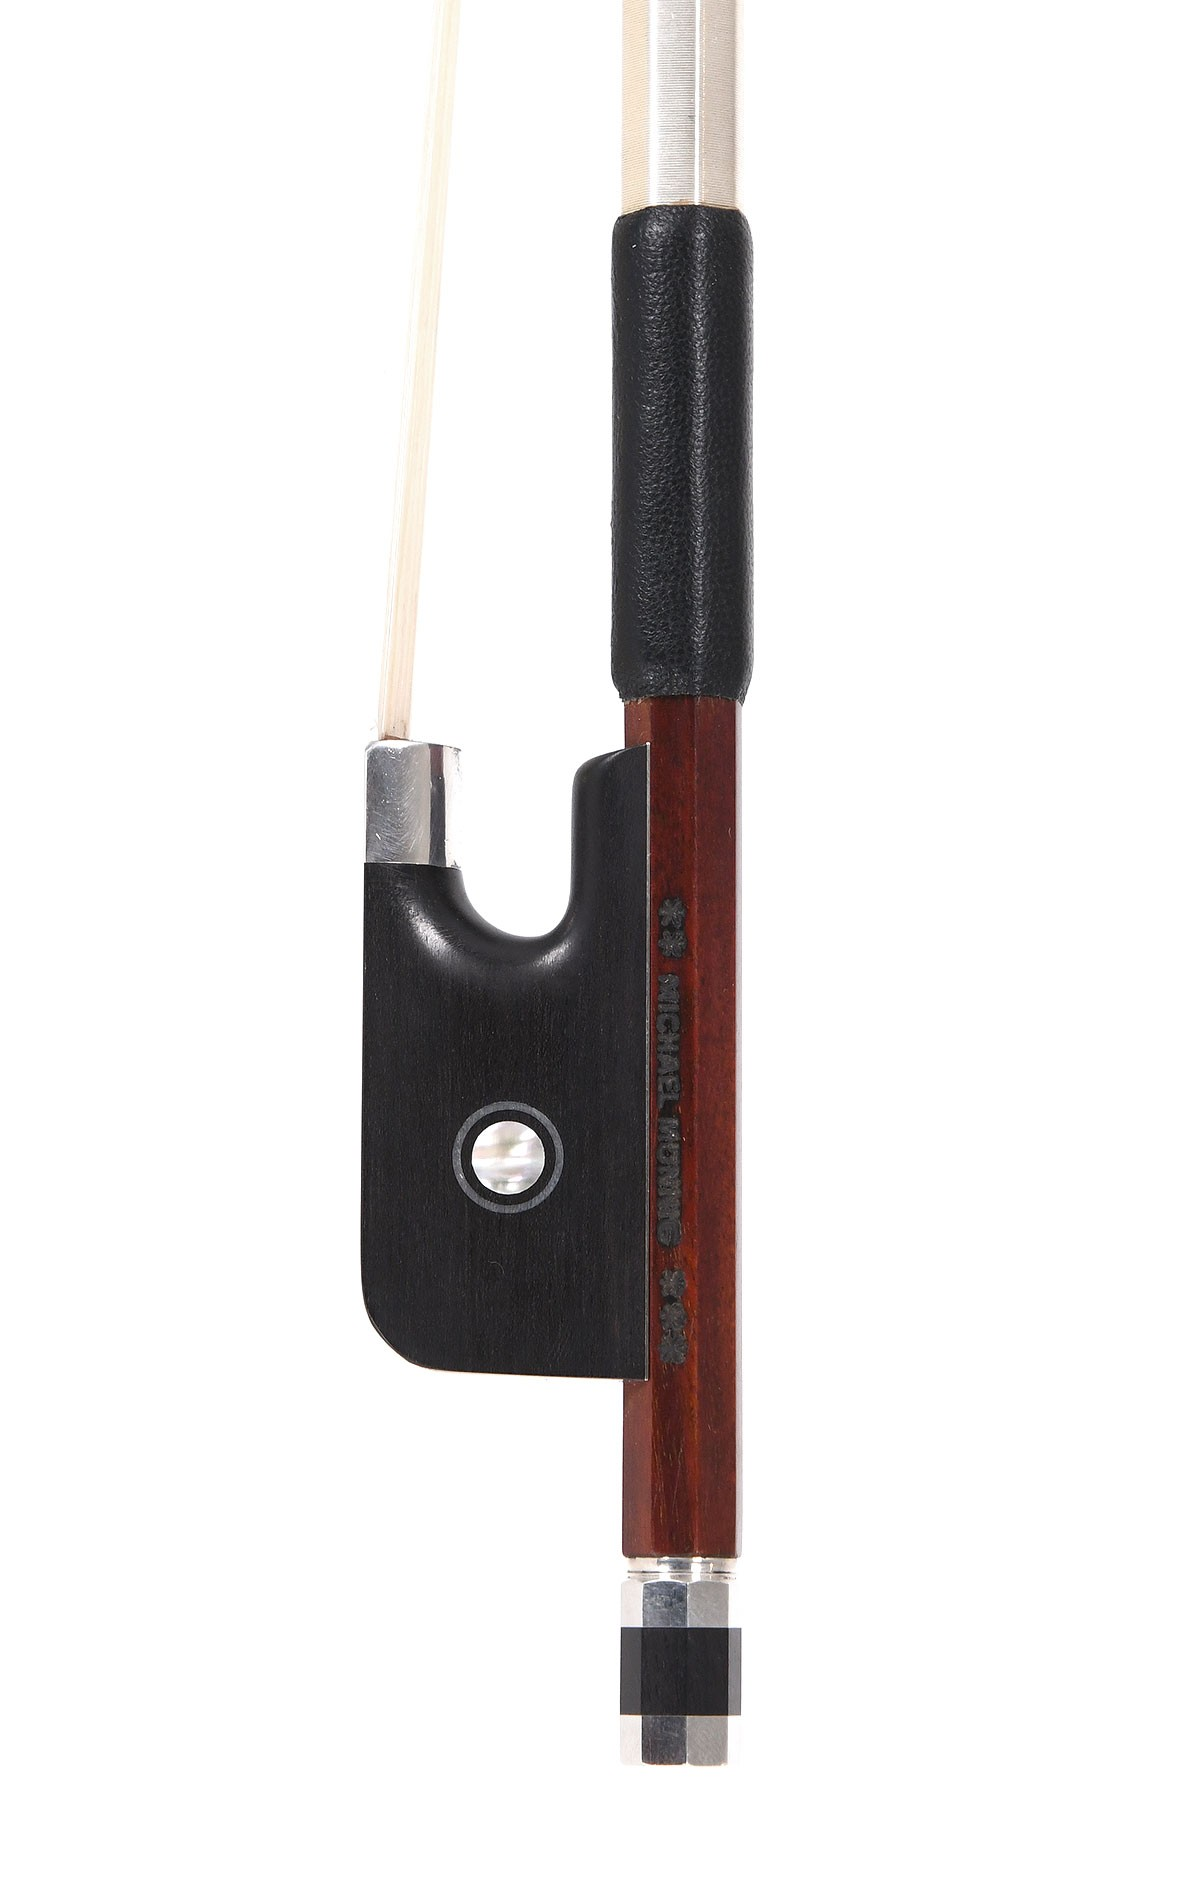 Cello bow by Michael Mönnig master bow maker in Markneukirchen